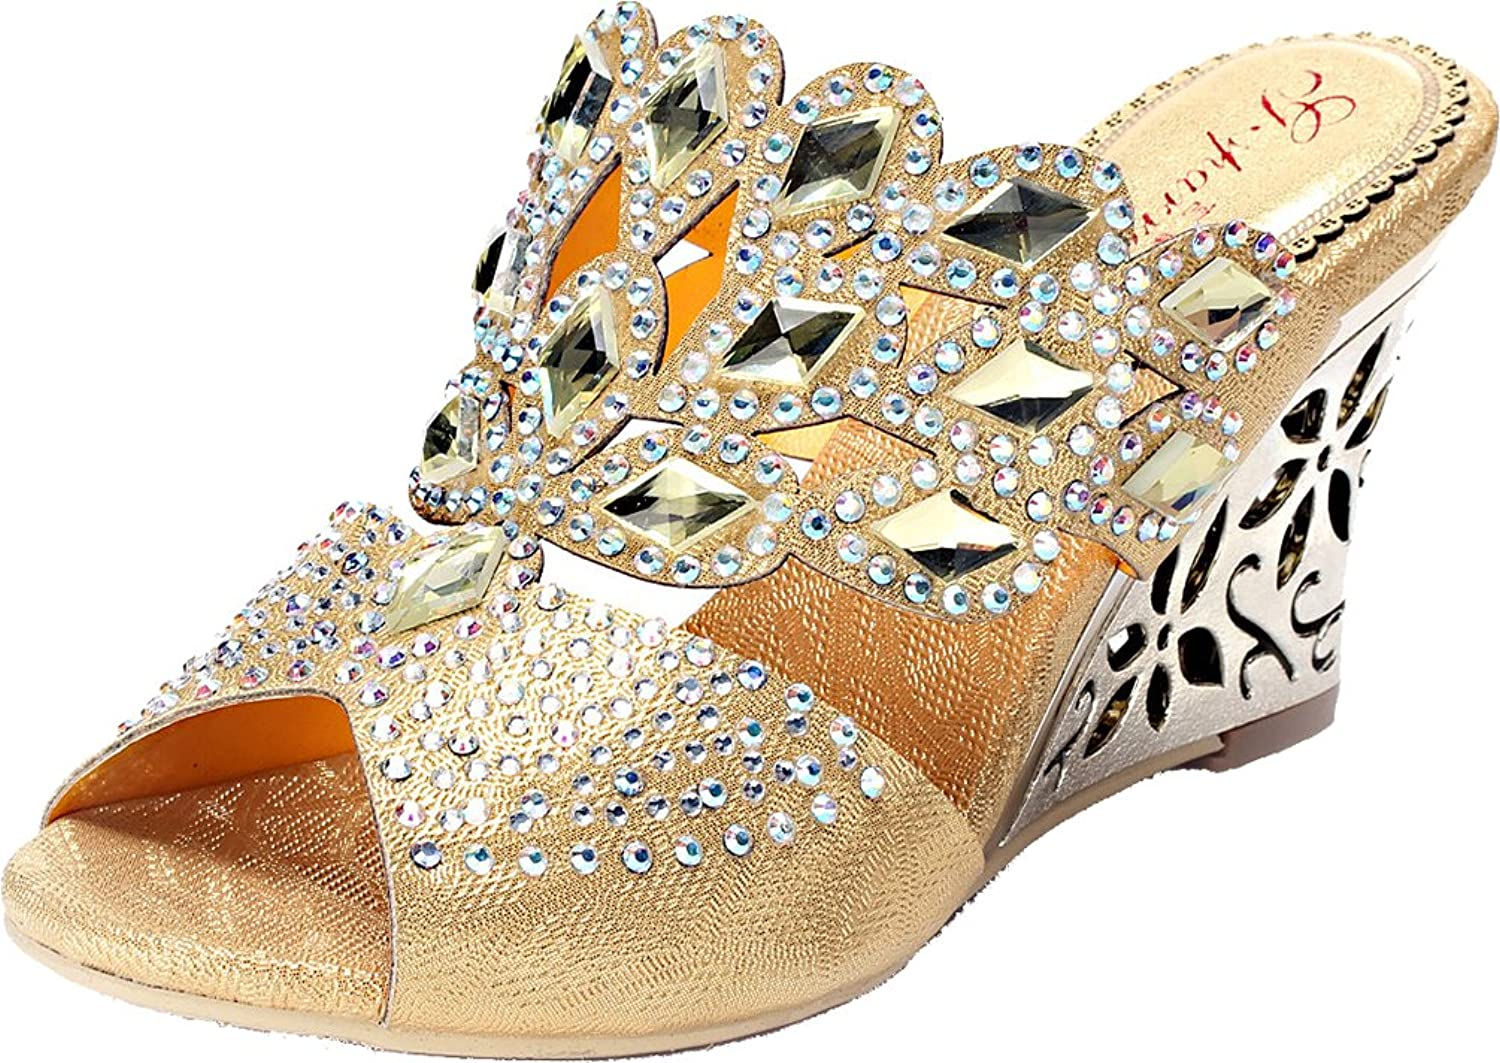 Salabobo Womens Wedding Bride Peep-Toe Wedge Sandals